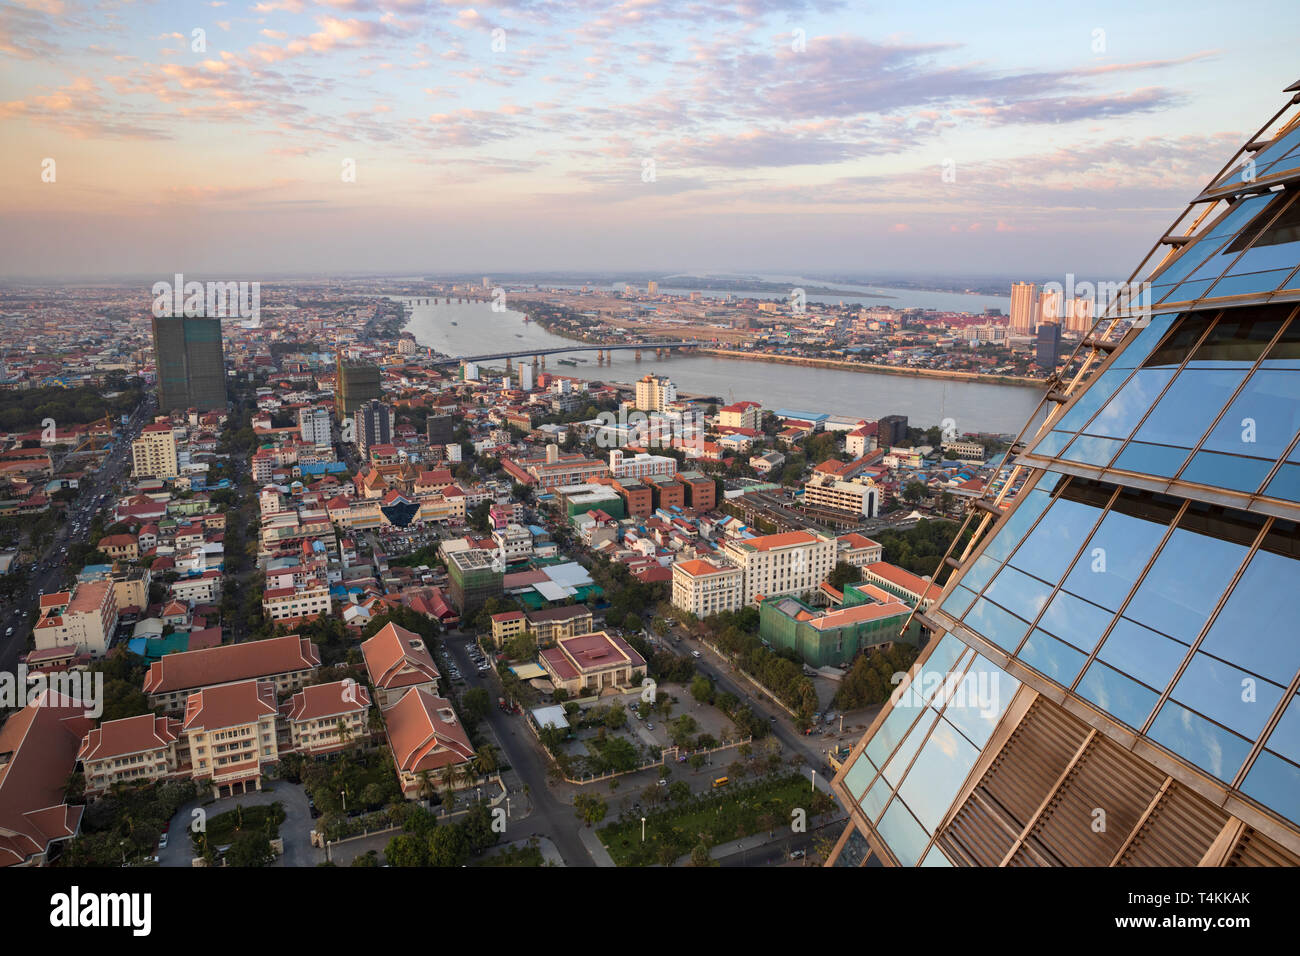 View over city at sunset from the Sky Bar at the Rosewood Phnom Penh, Phnom Penh, Cambodia, Southeast Asia, Asia - Stock Image